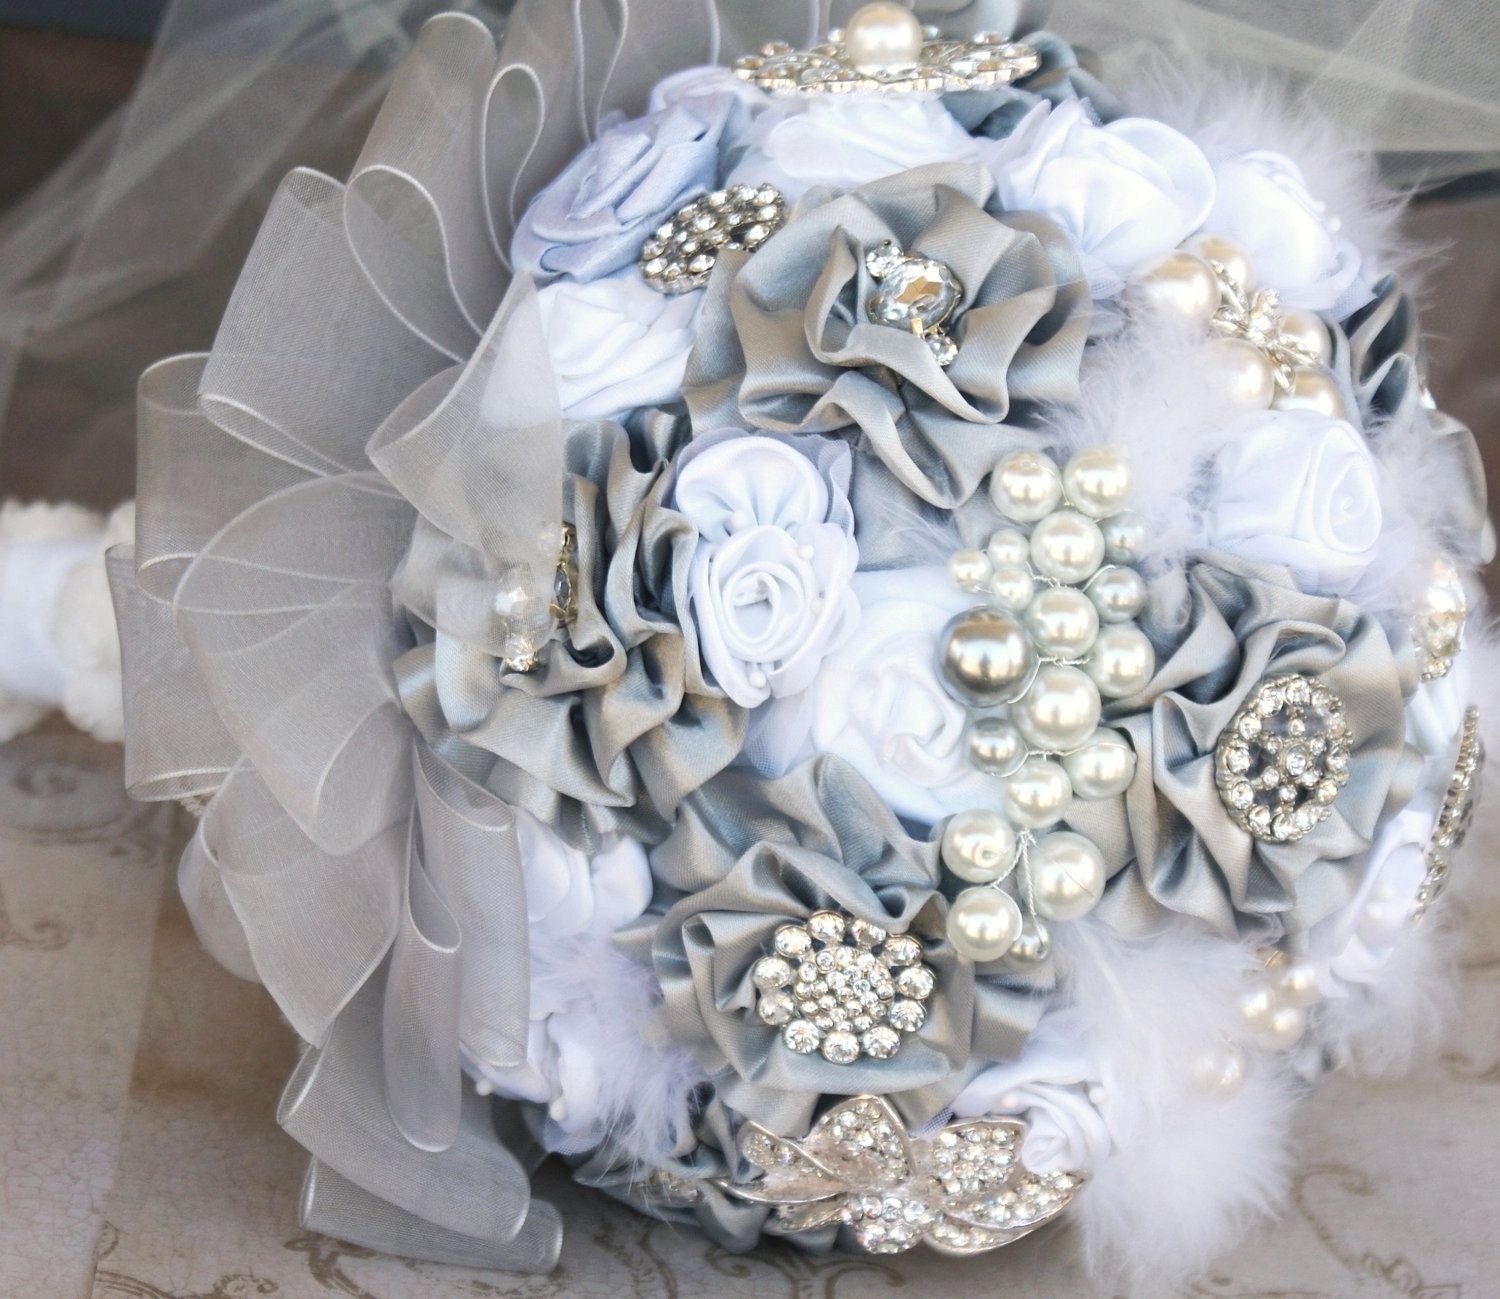 Brooch Bridal Bouquet Vintage Inspired Jeweled Bouquet in